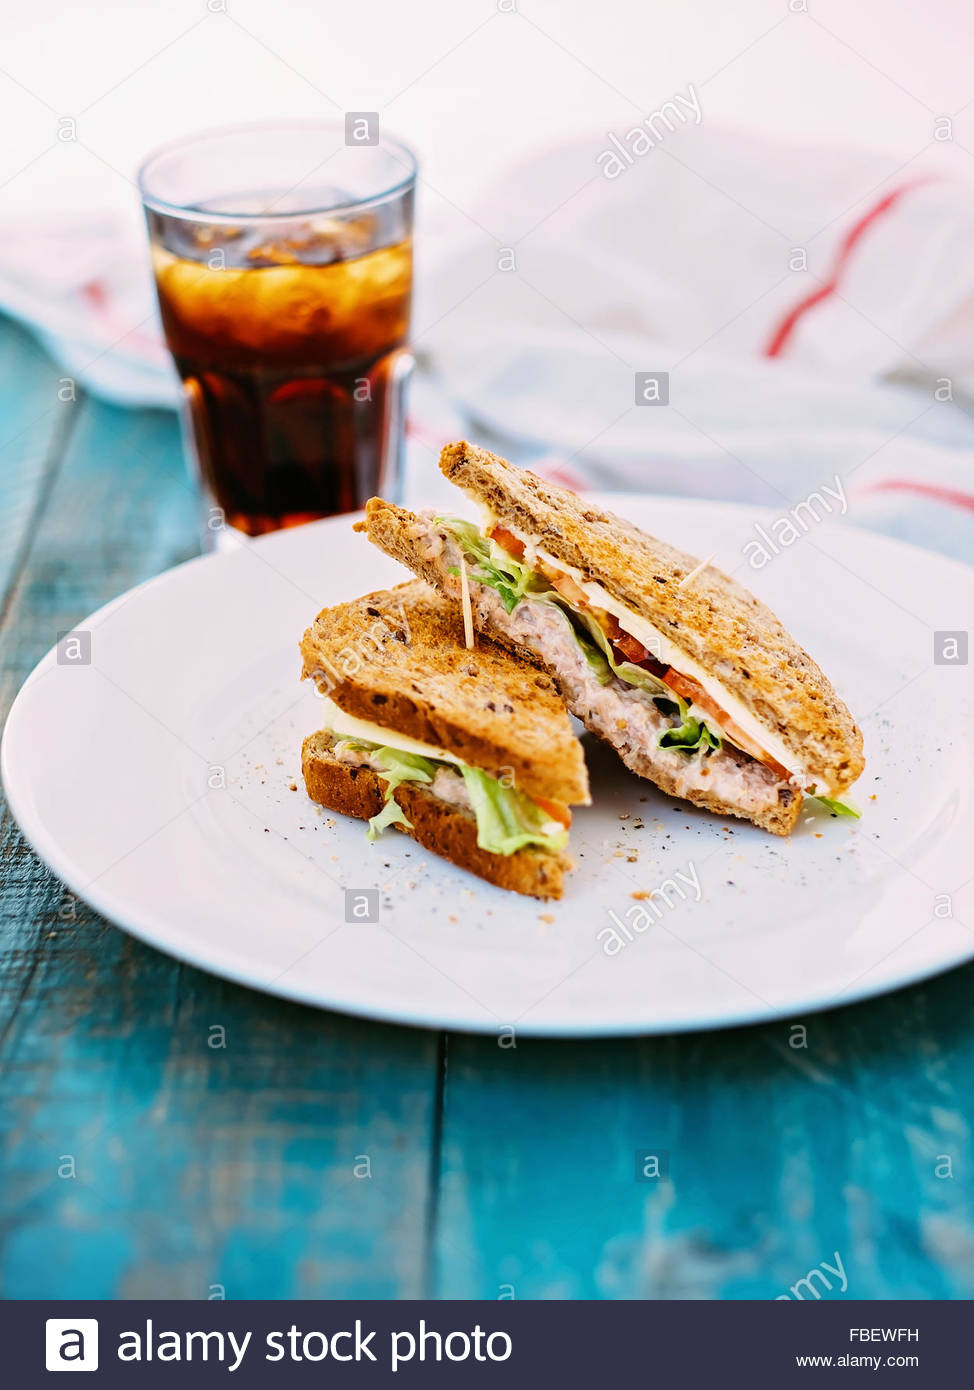 TUNA SANDWICH WITH CHEESE AND TOMATOES - Stock Image